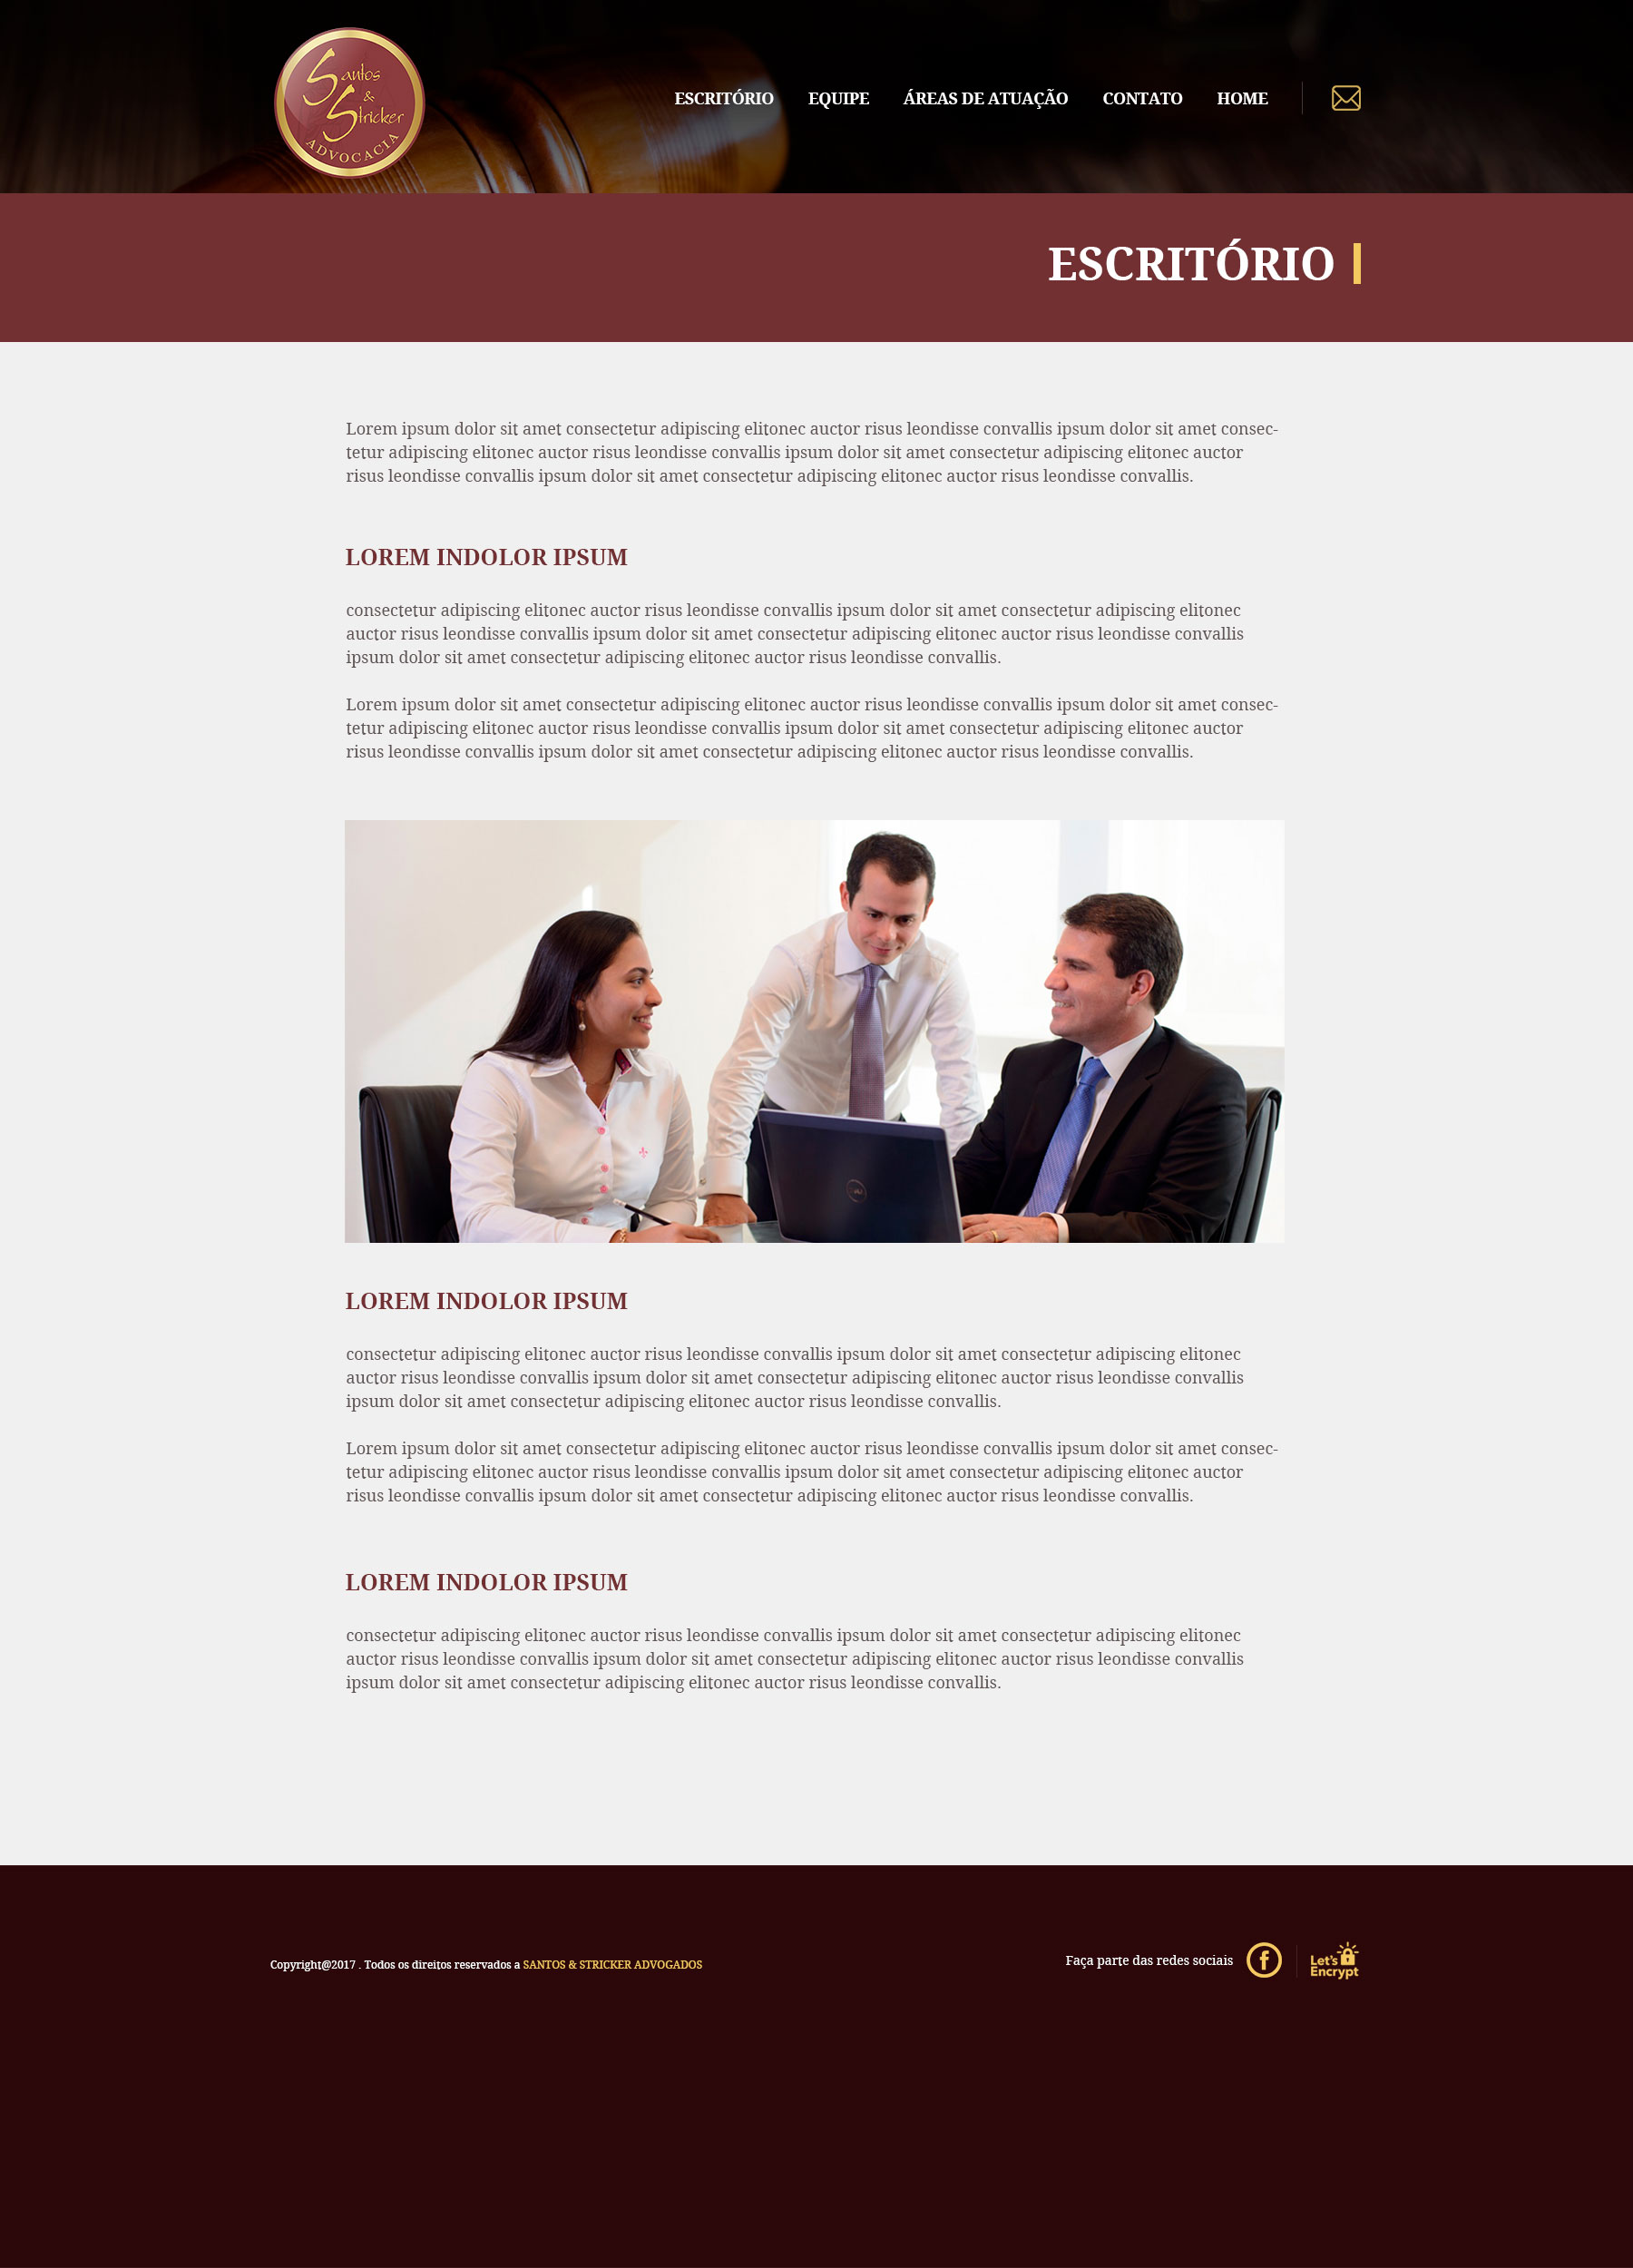 Santos e Stricker Advocacia - Site Internas